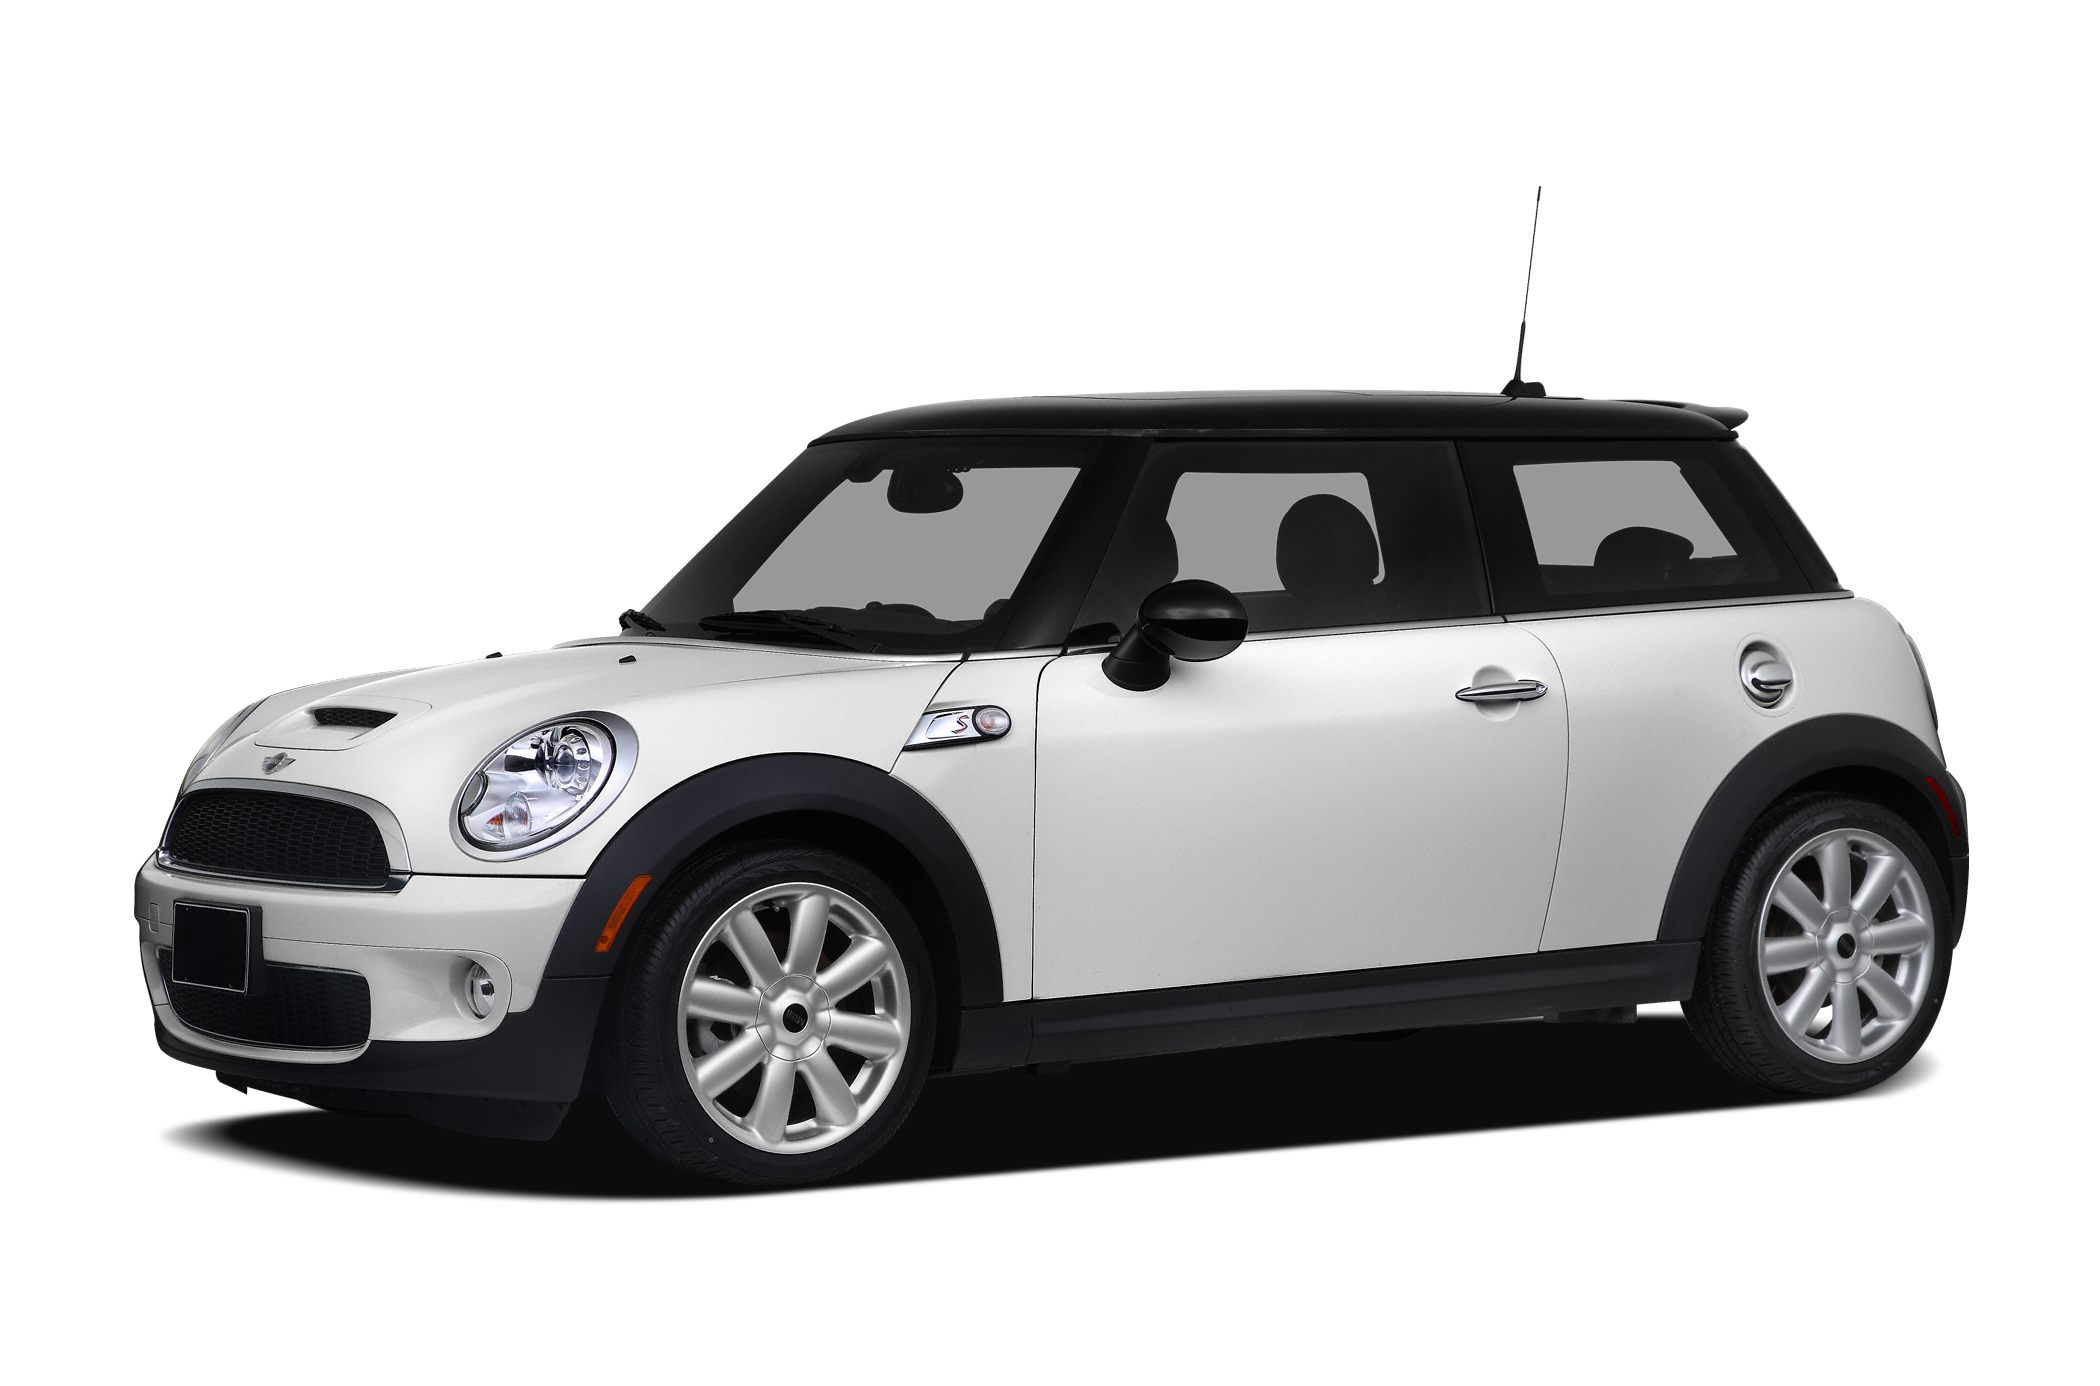 2009 MINI Cooper S S trim FUEL EFFICIENT 34 MPG Hwy26 MPG City iPodMP3 Input CD Player Alumi